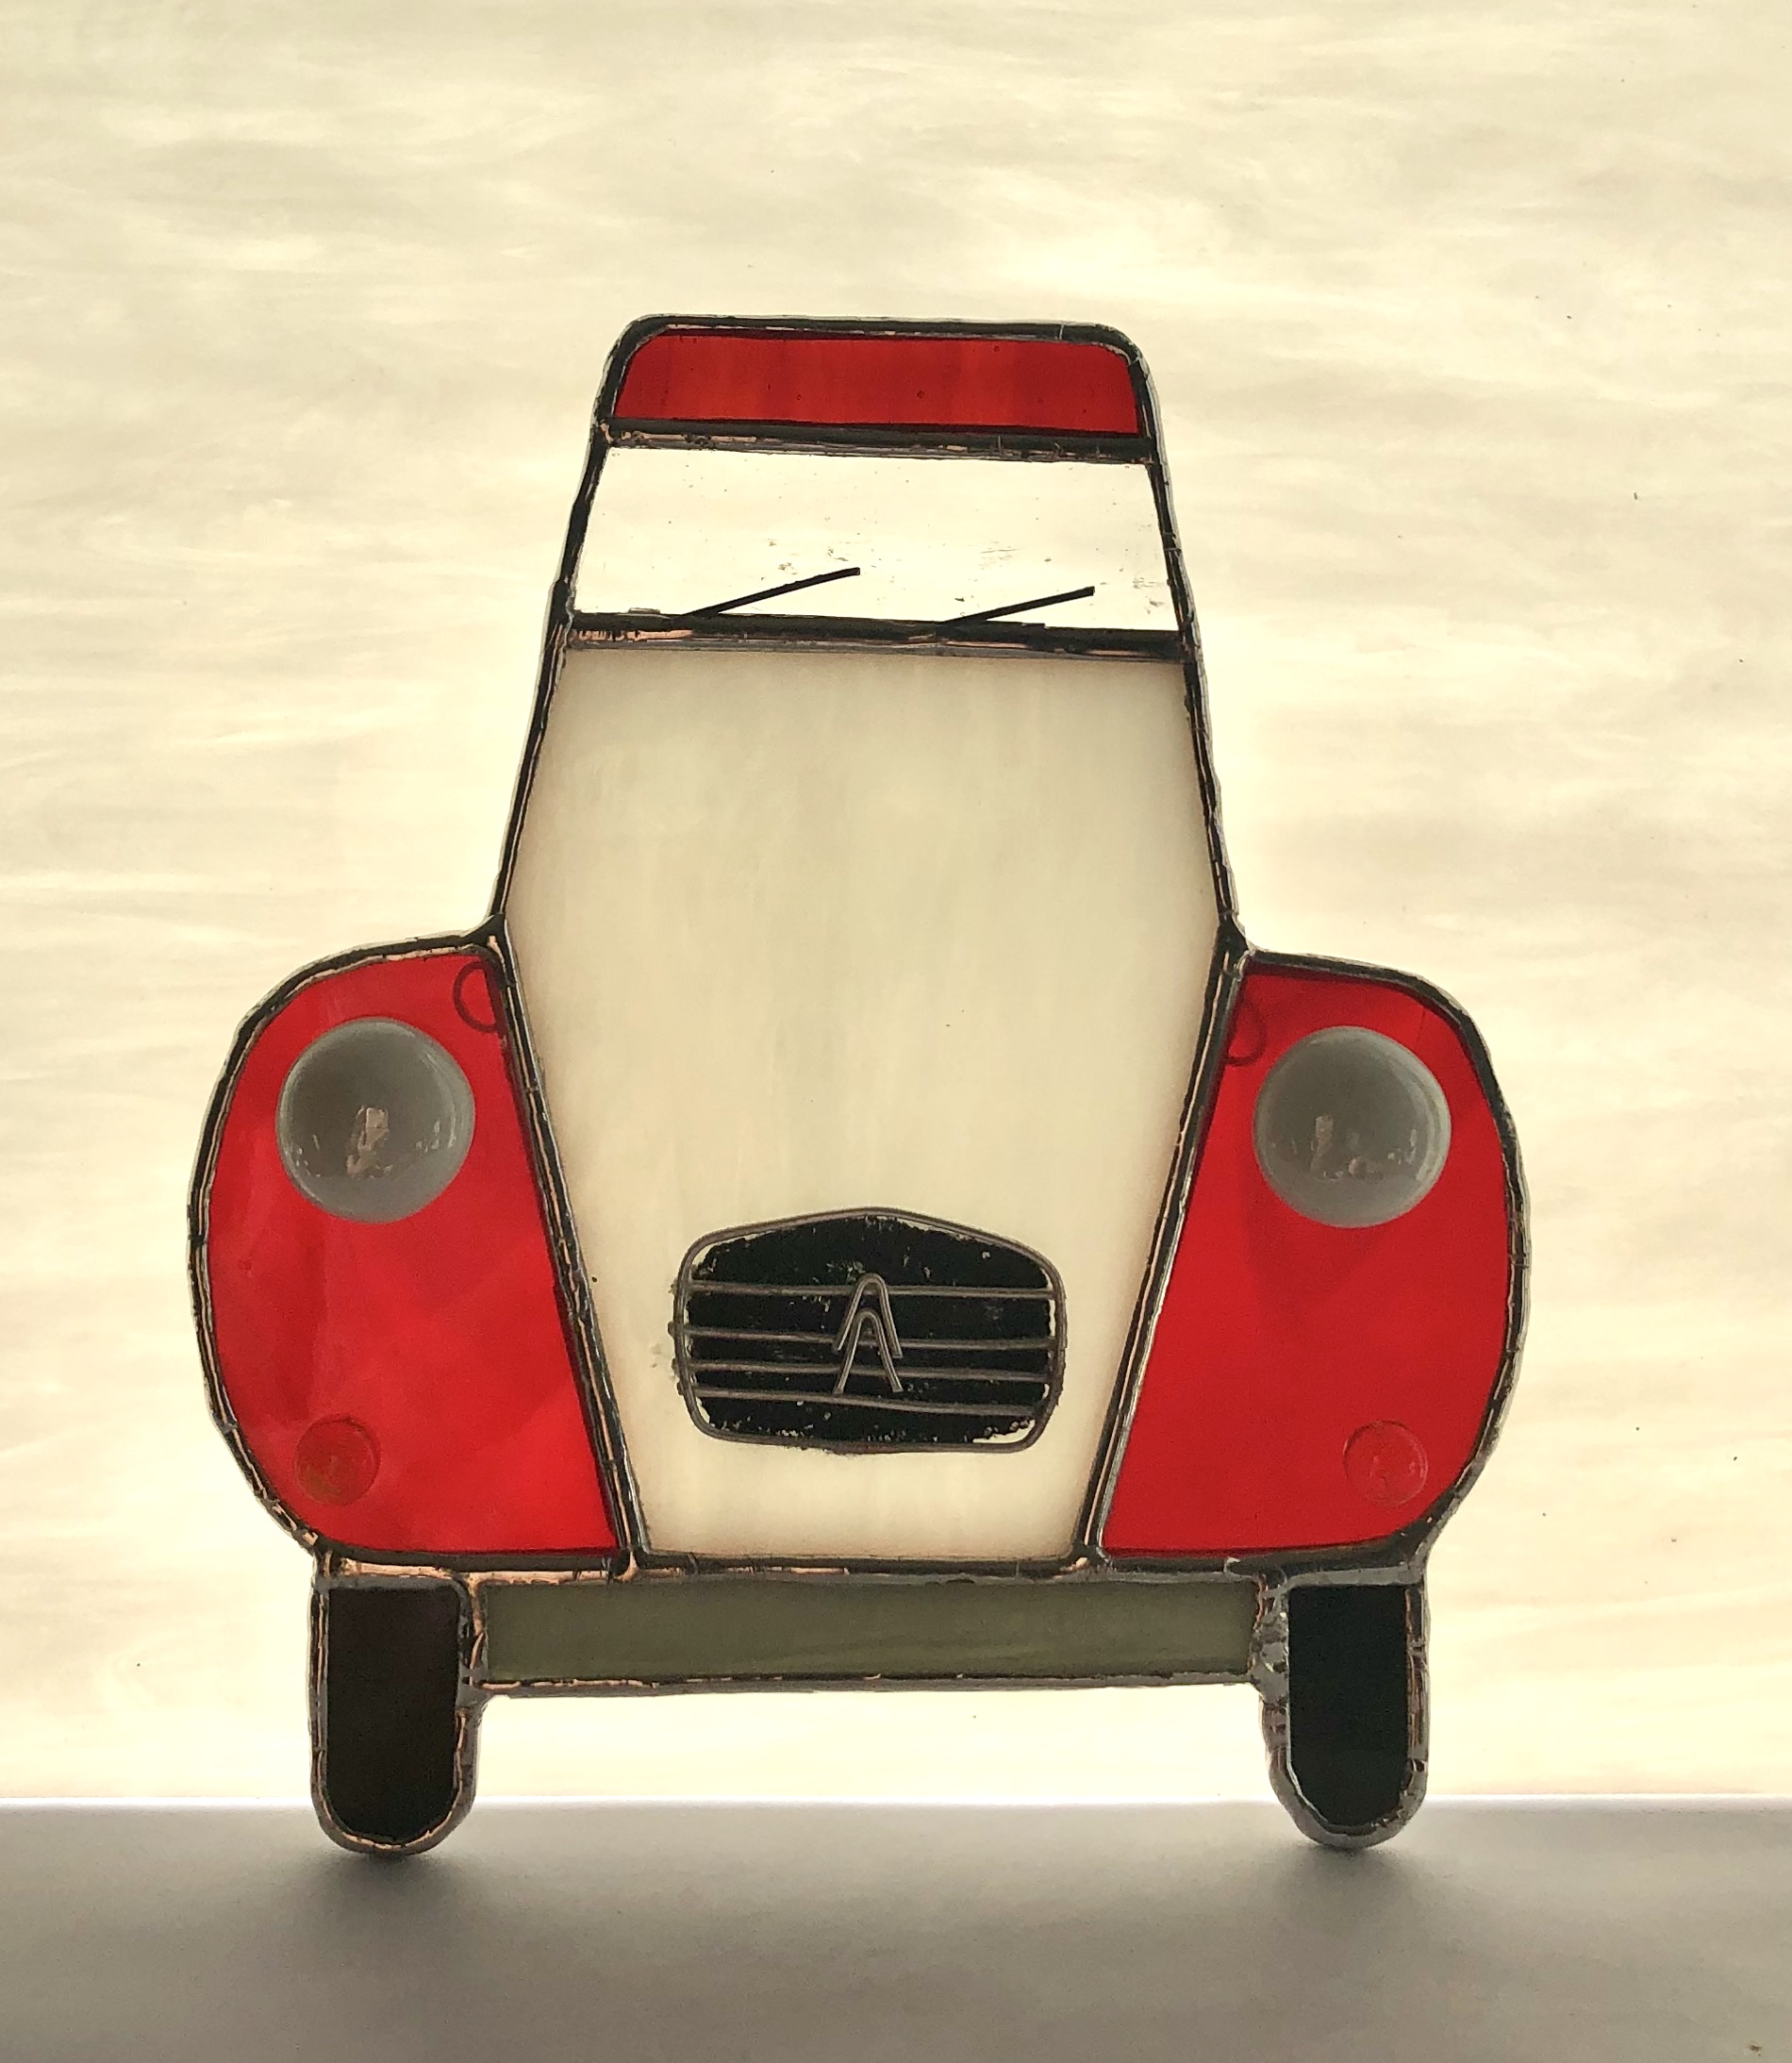 Please click here for more 2CV creations!